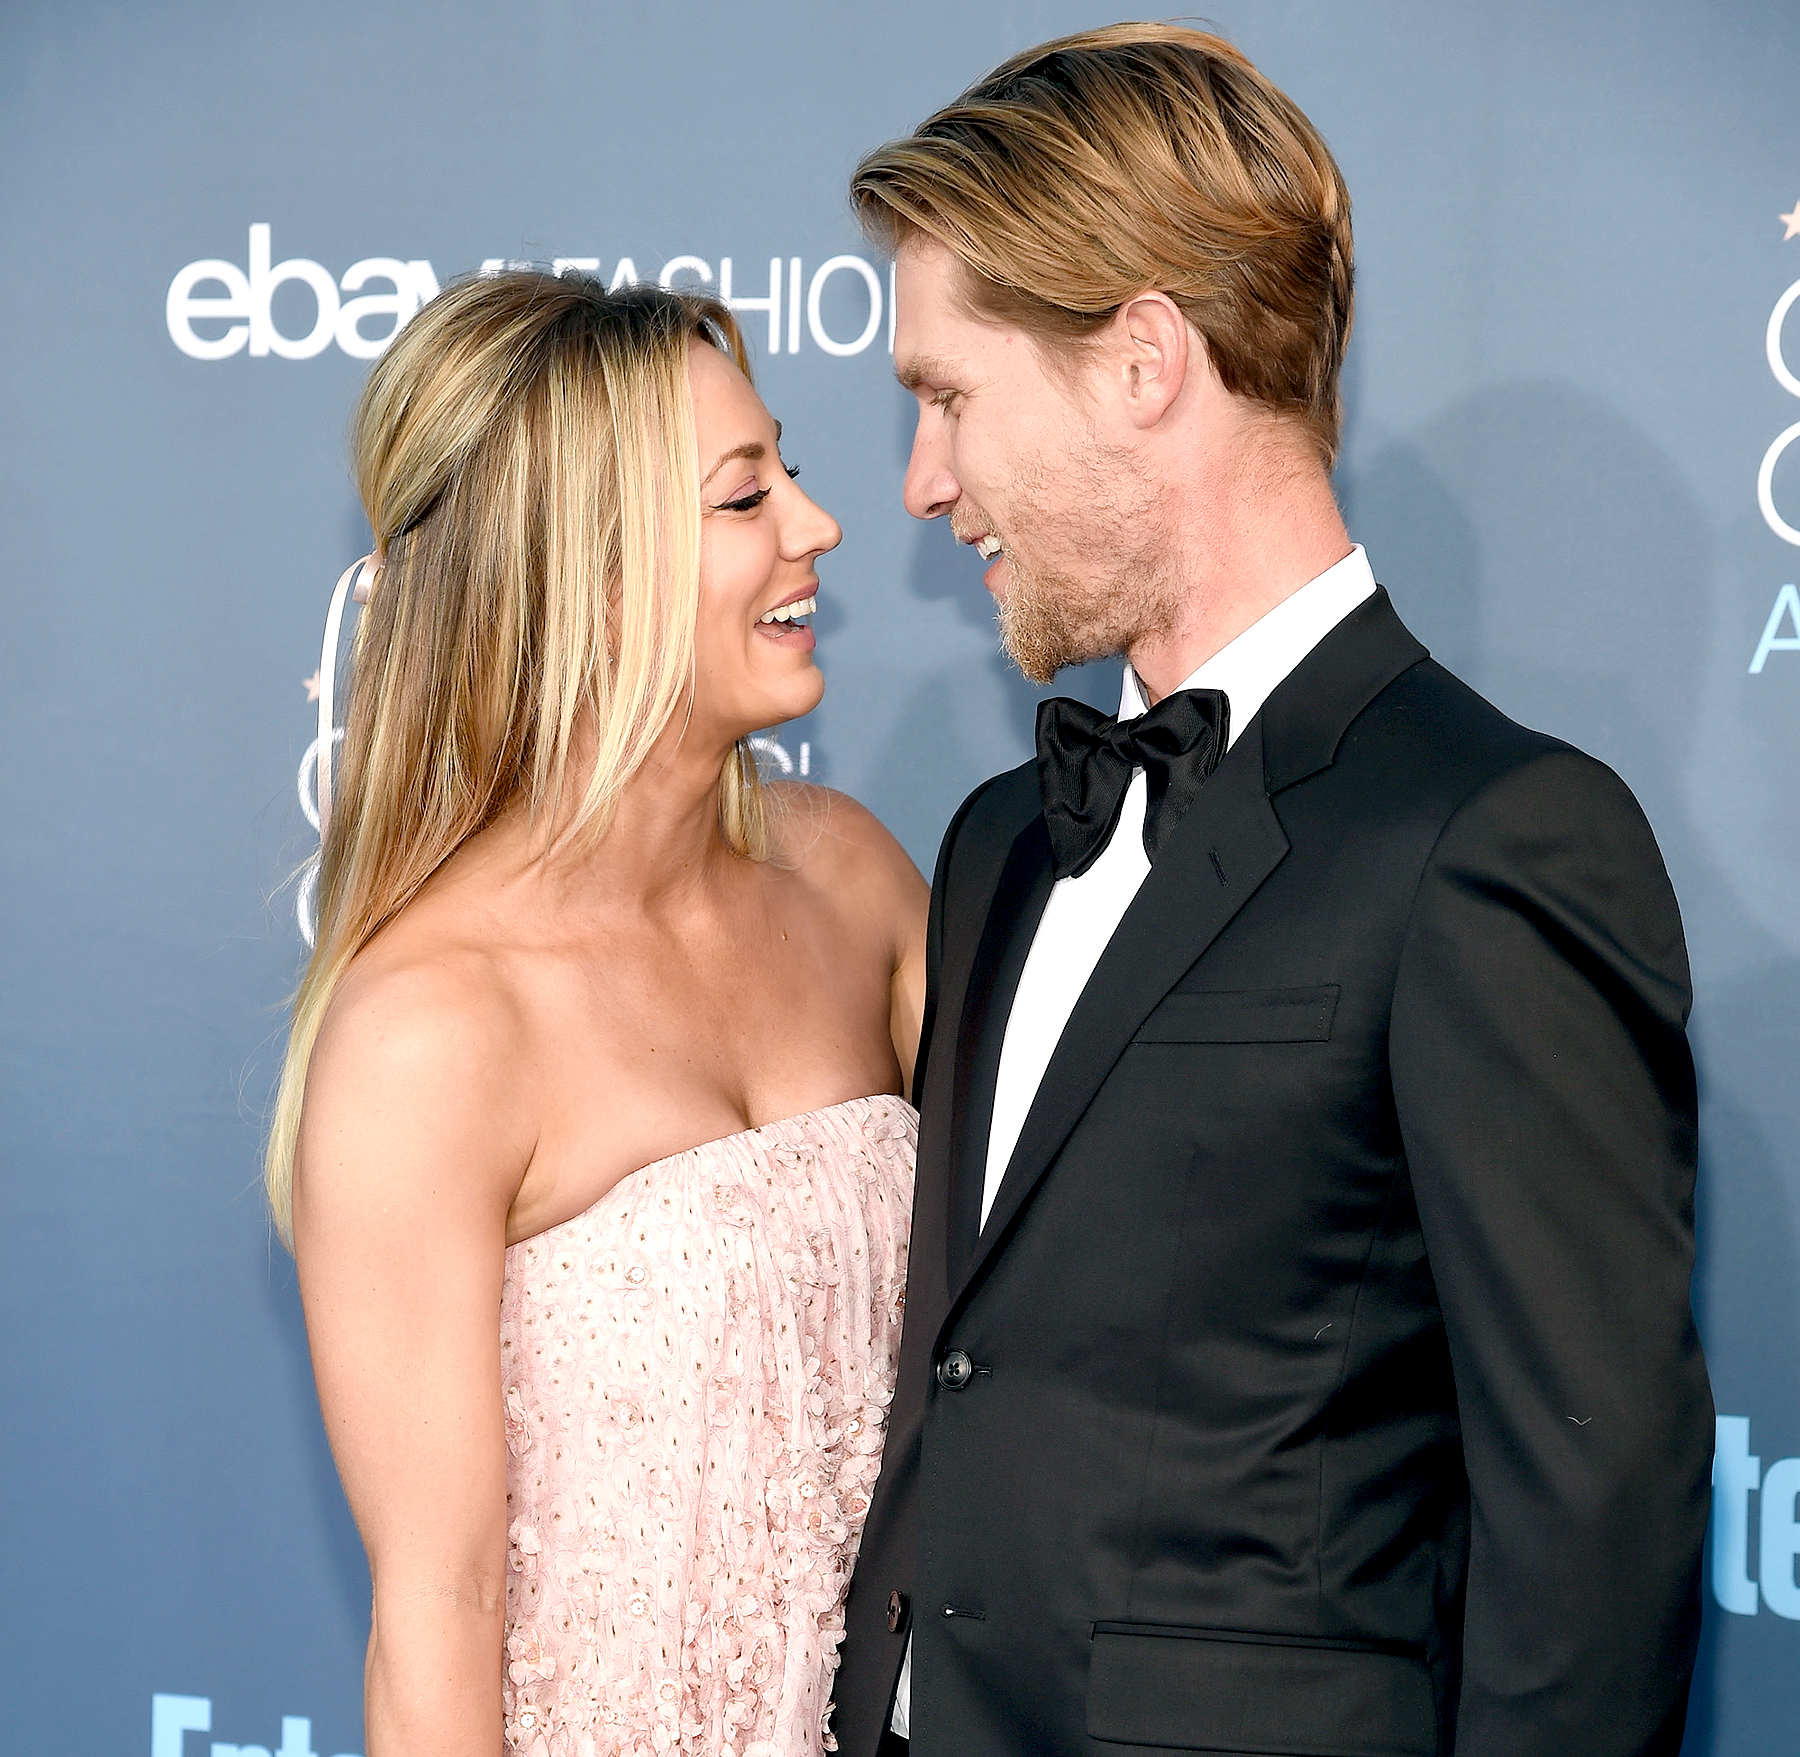 Kaley Cuoco and Karl Cook attend The 22nd Annual Critics' Choice Awards at Barker Hangar on December 11, 2016 in Santa Monica, California.